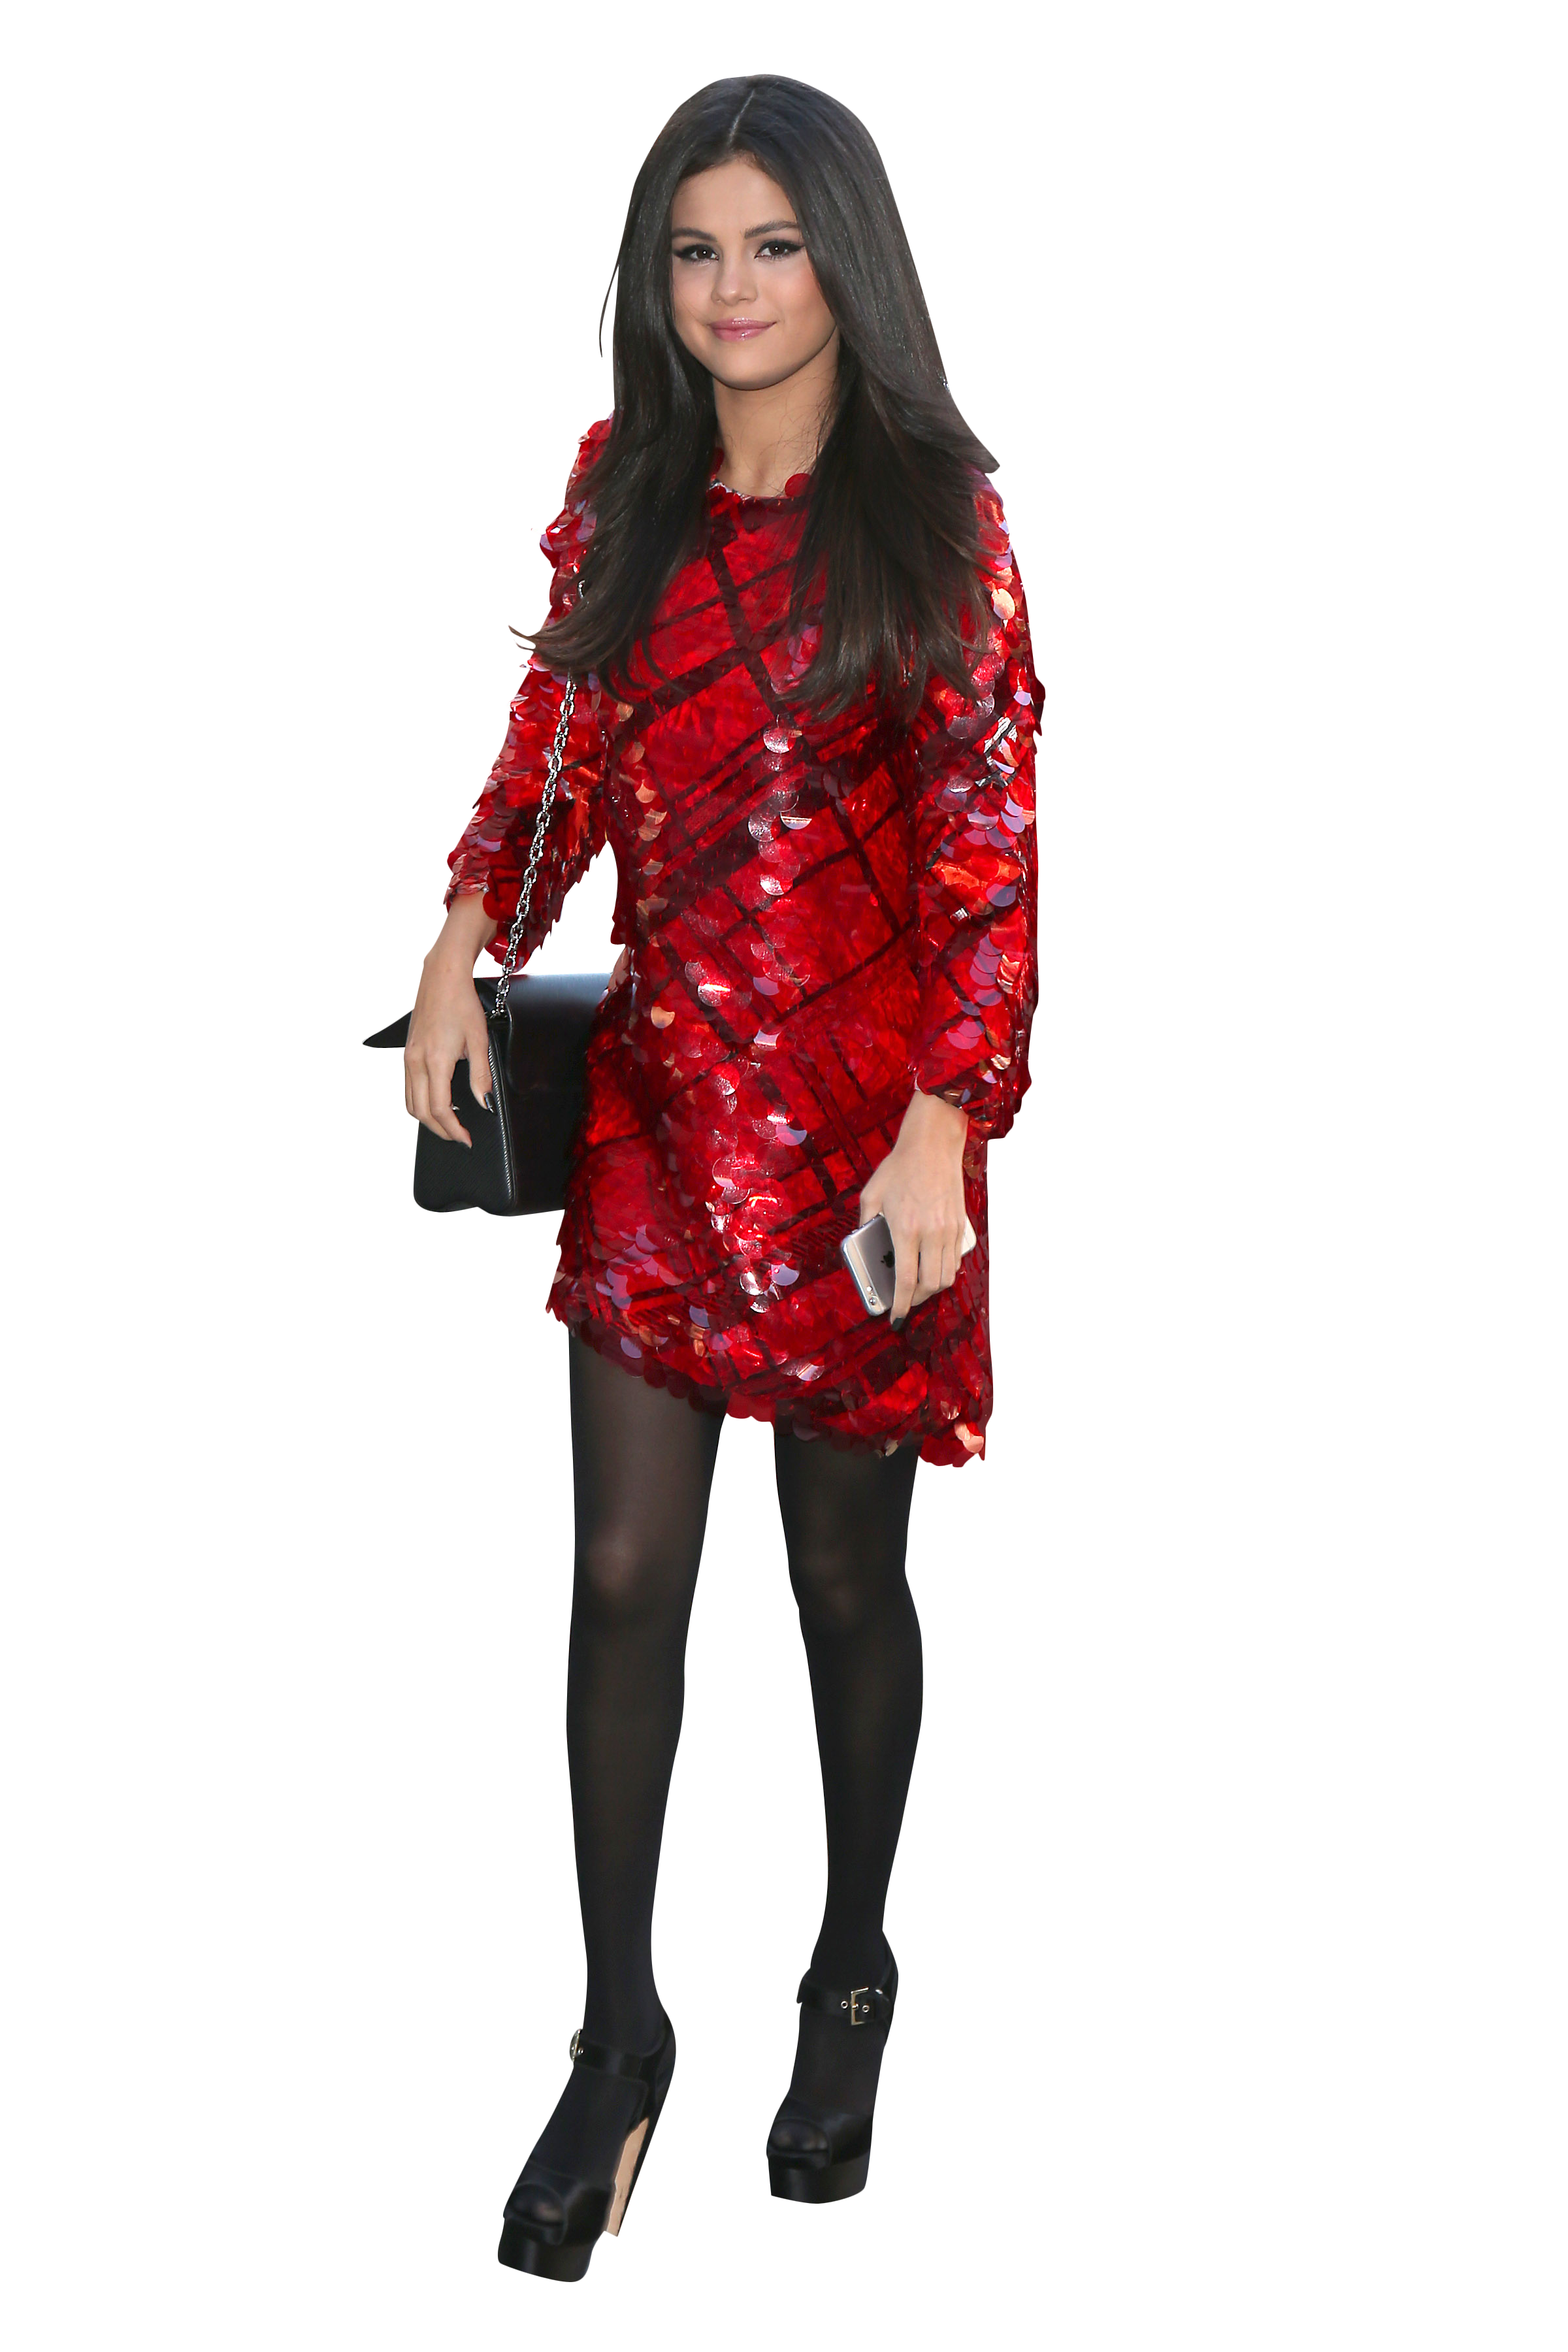 Selena Gomez in Red Dress and Black Pantyhose PNG Image ...